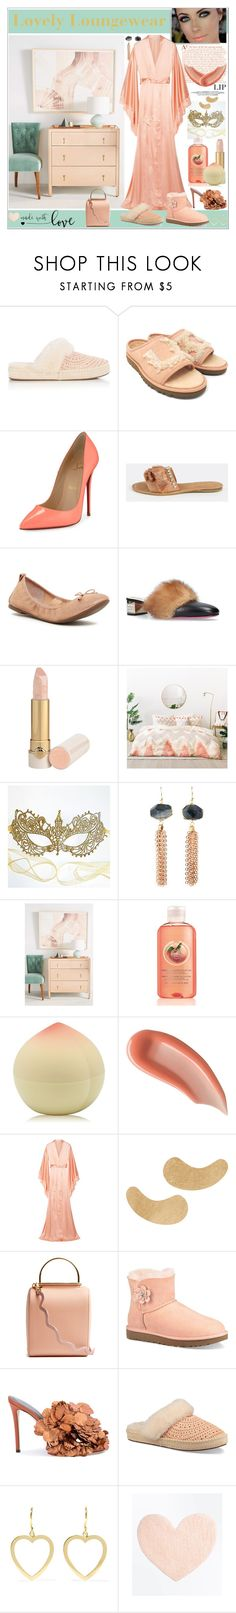 """""""Peach Lipstick"""" by yours-styling-best-friend ❤ liked on Polyvore featuring beauty, UGG, Christian Louboutin, Jessica Simpson, Gucci, DENY Designs, Masquerade, Anthropologie, TONYMOLY and Surratt"""